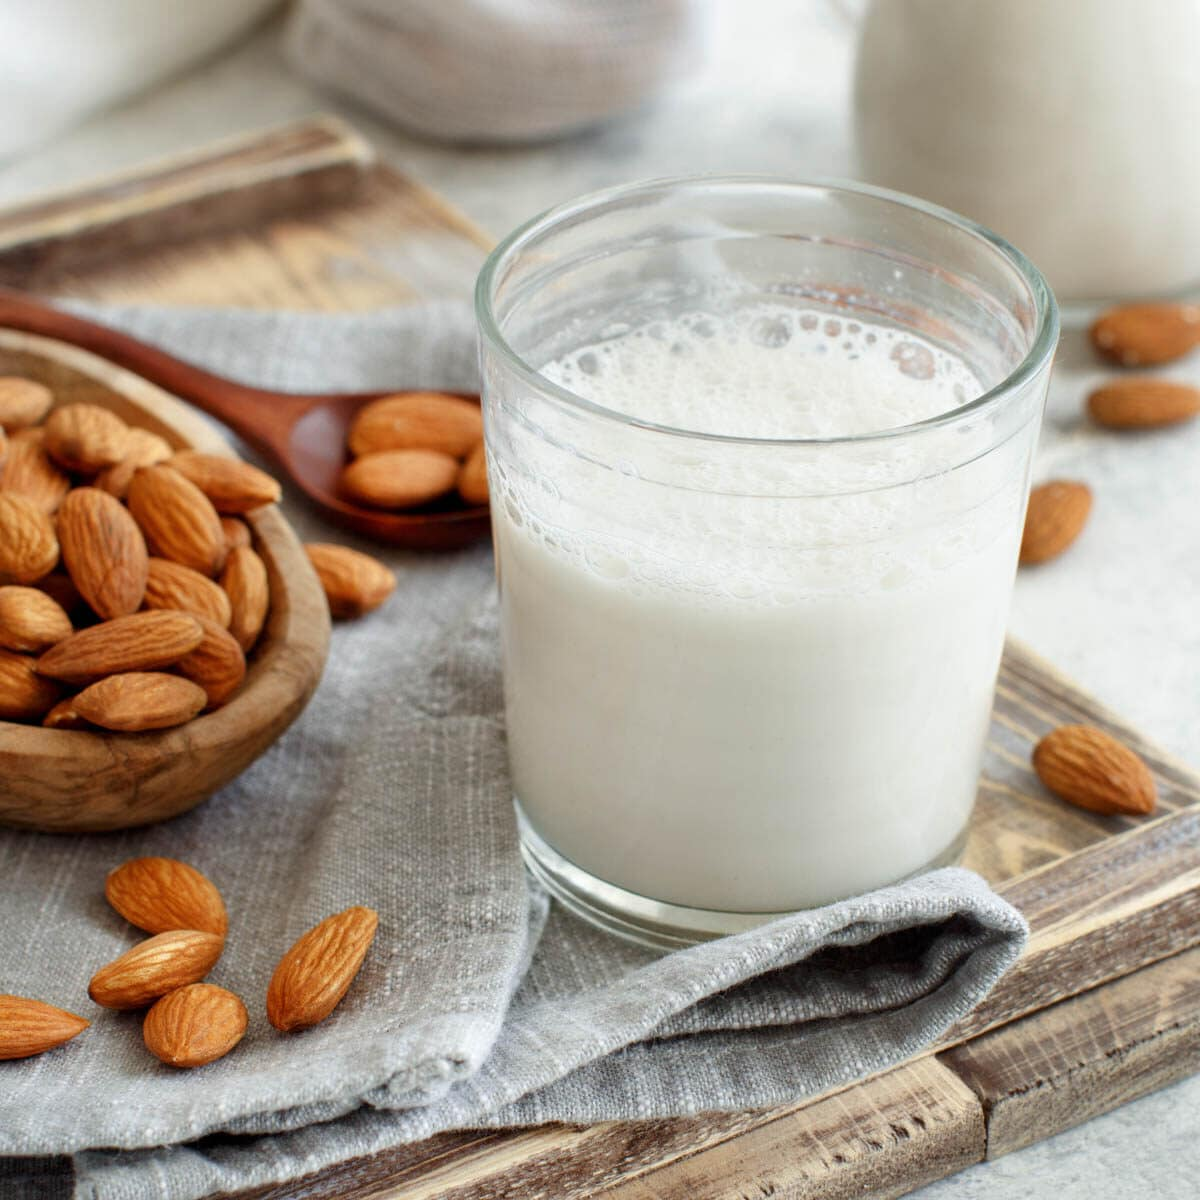 Glass of almond milk with a wooden bowl and spoon full of almonds